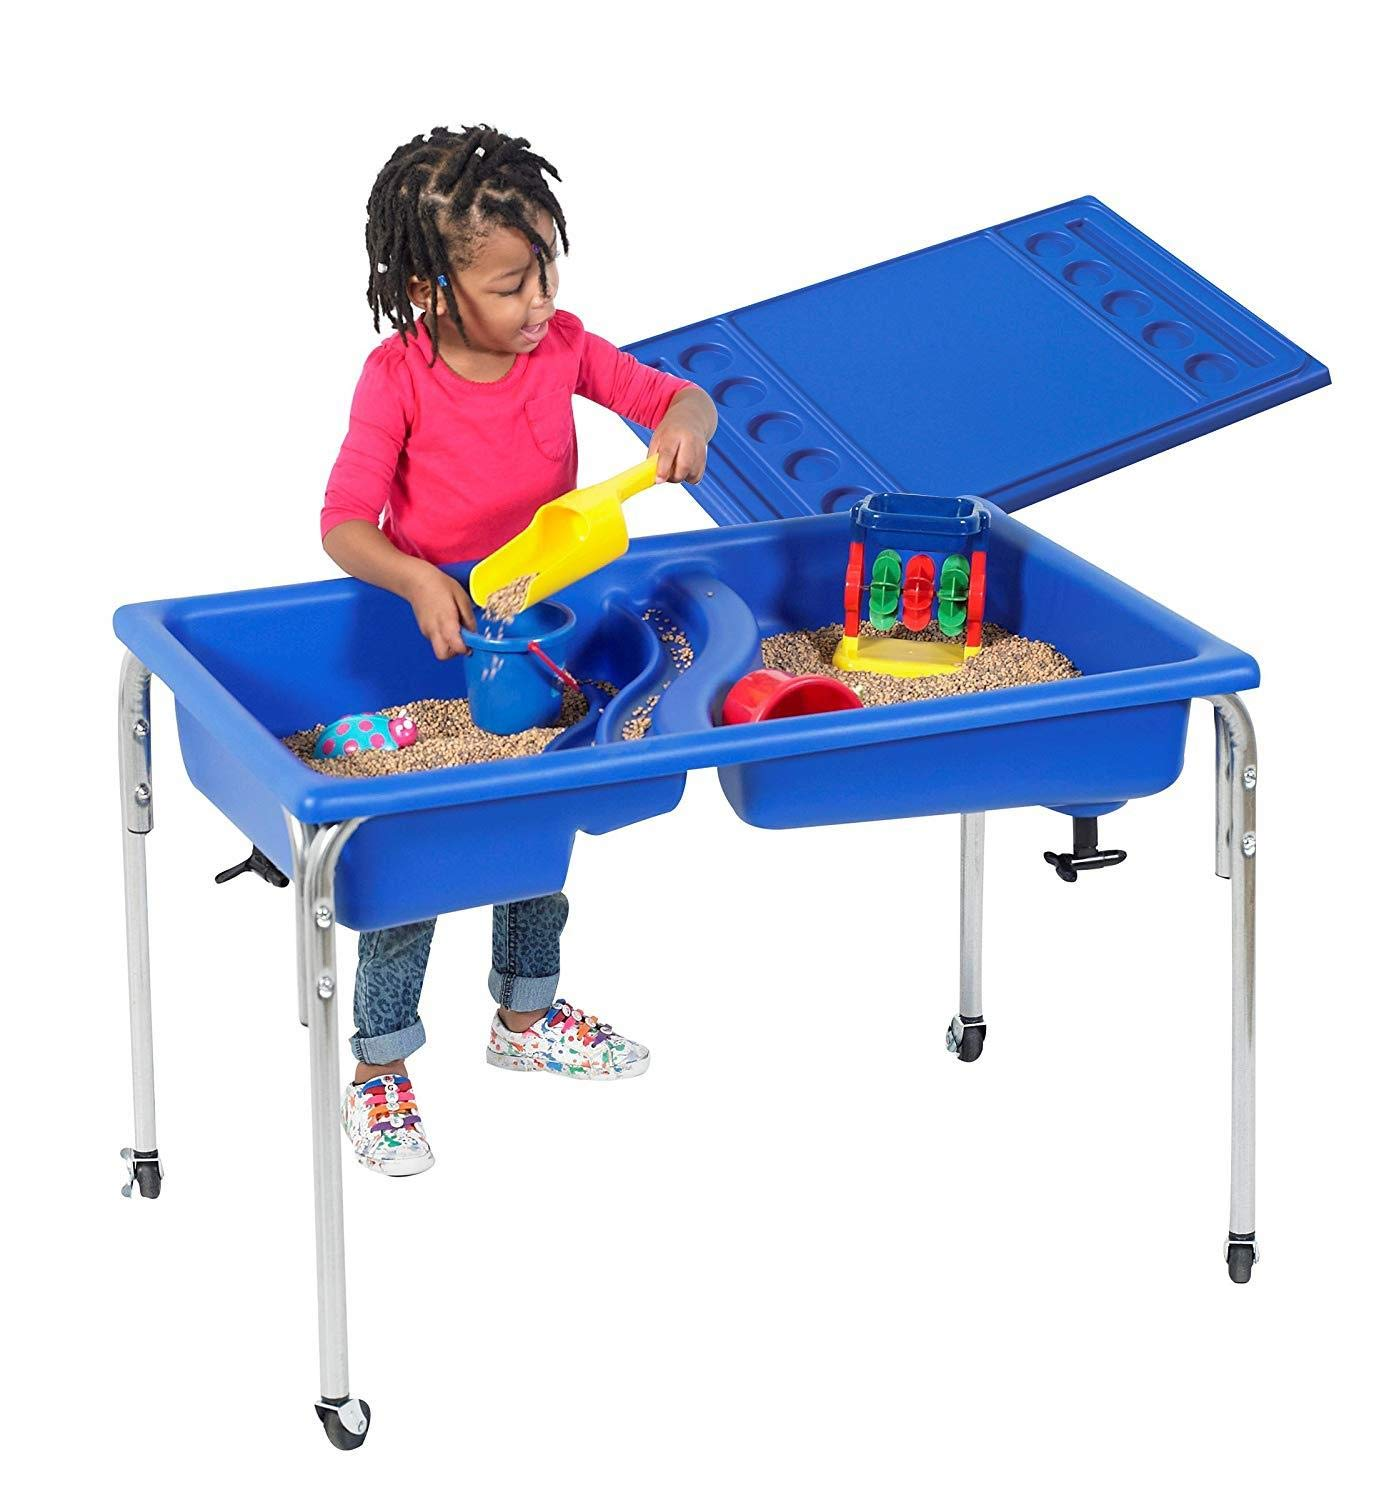 Children's Factory Neptune Table and Lid Set Sensory Table for Kids in Blue (36 x 24 x 24 in) by Children's Factory